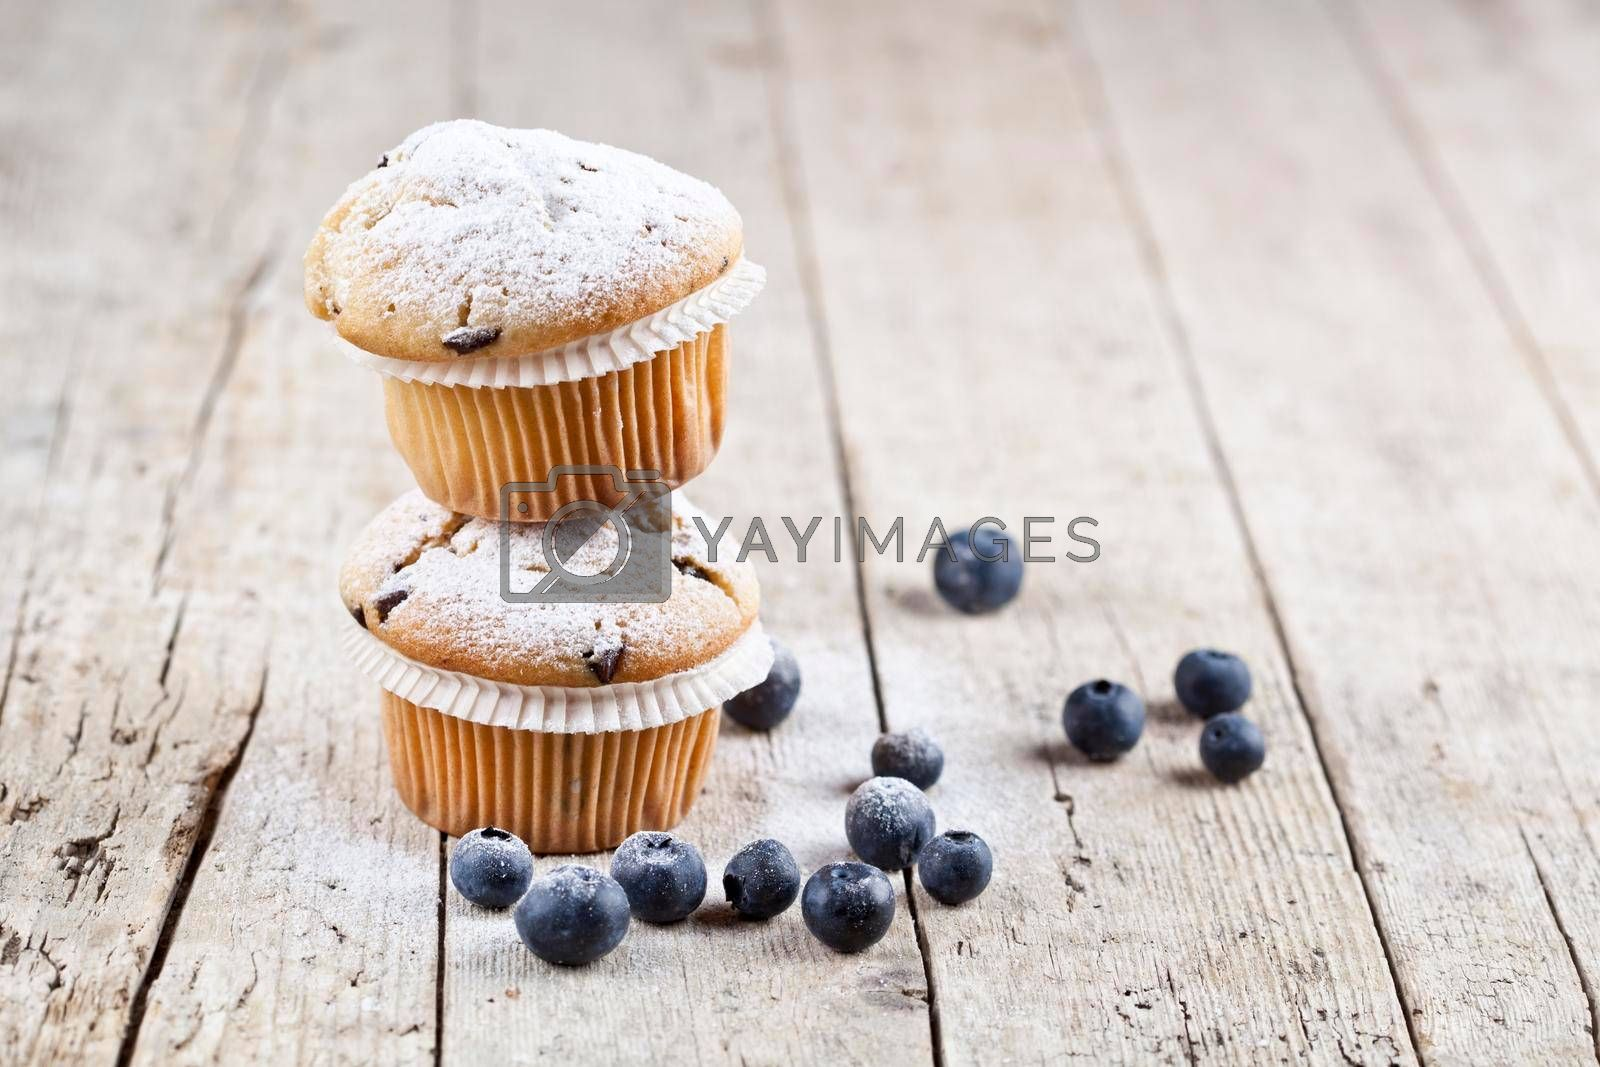 Two fresh homemade muffins with blueberries on rustic wooden table background. With copy space.